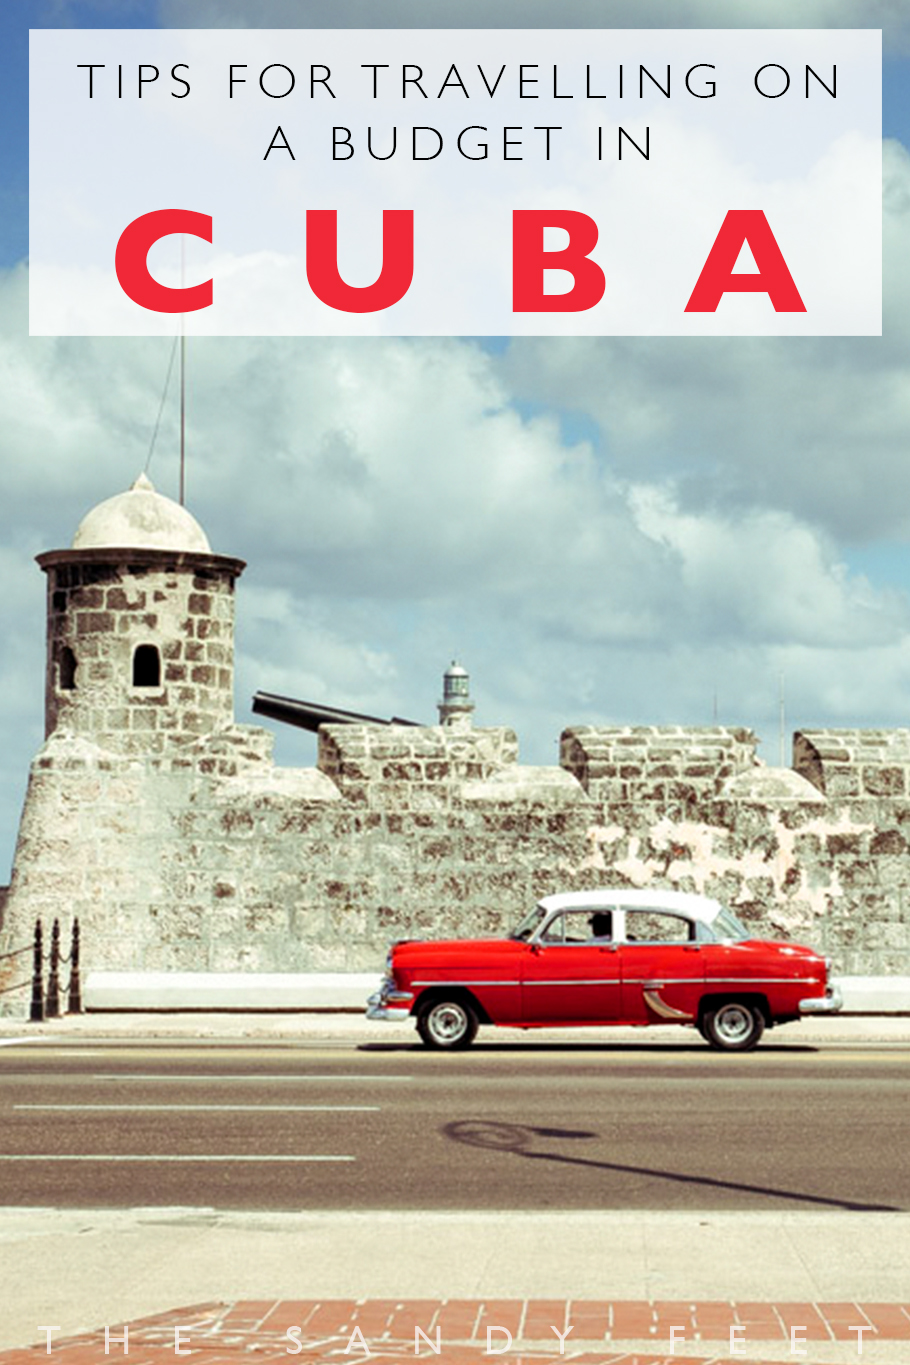 Cuba On A Budget: Top Tips For Travelling On A Budget In Cuba